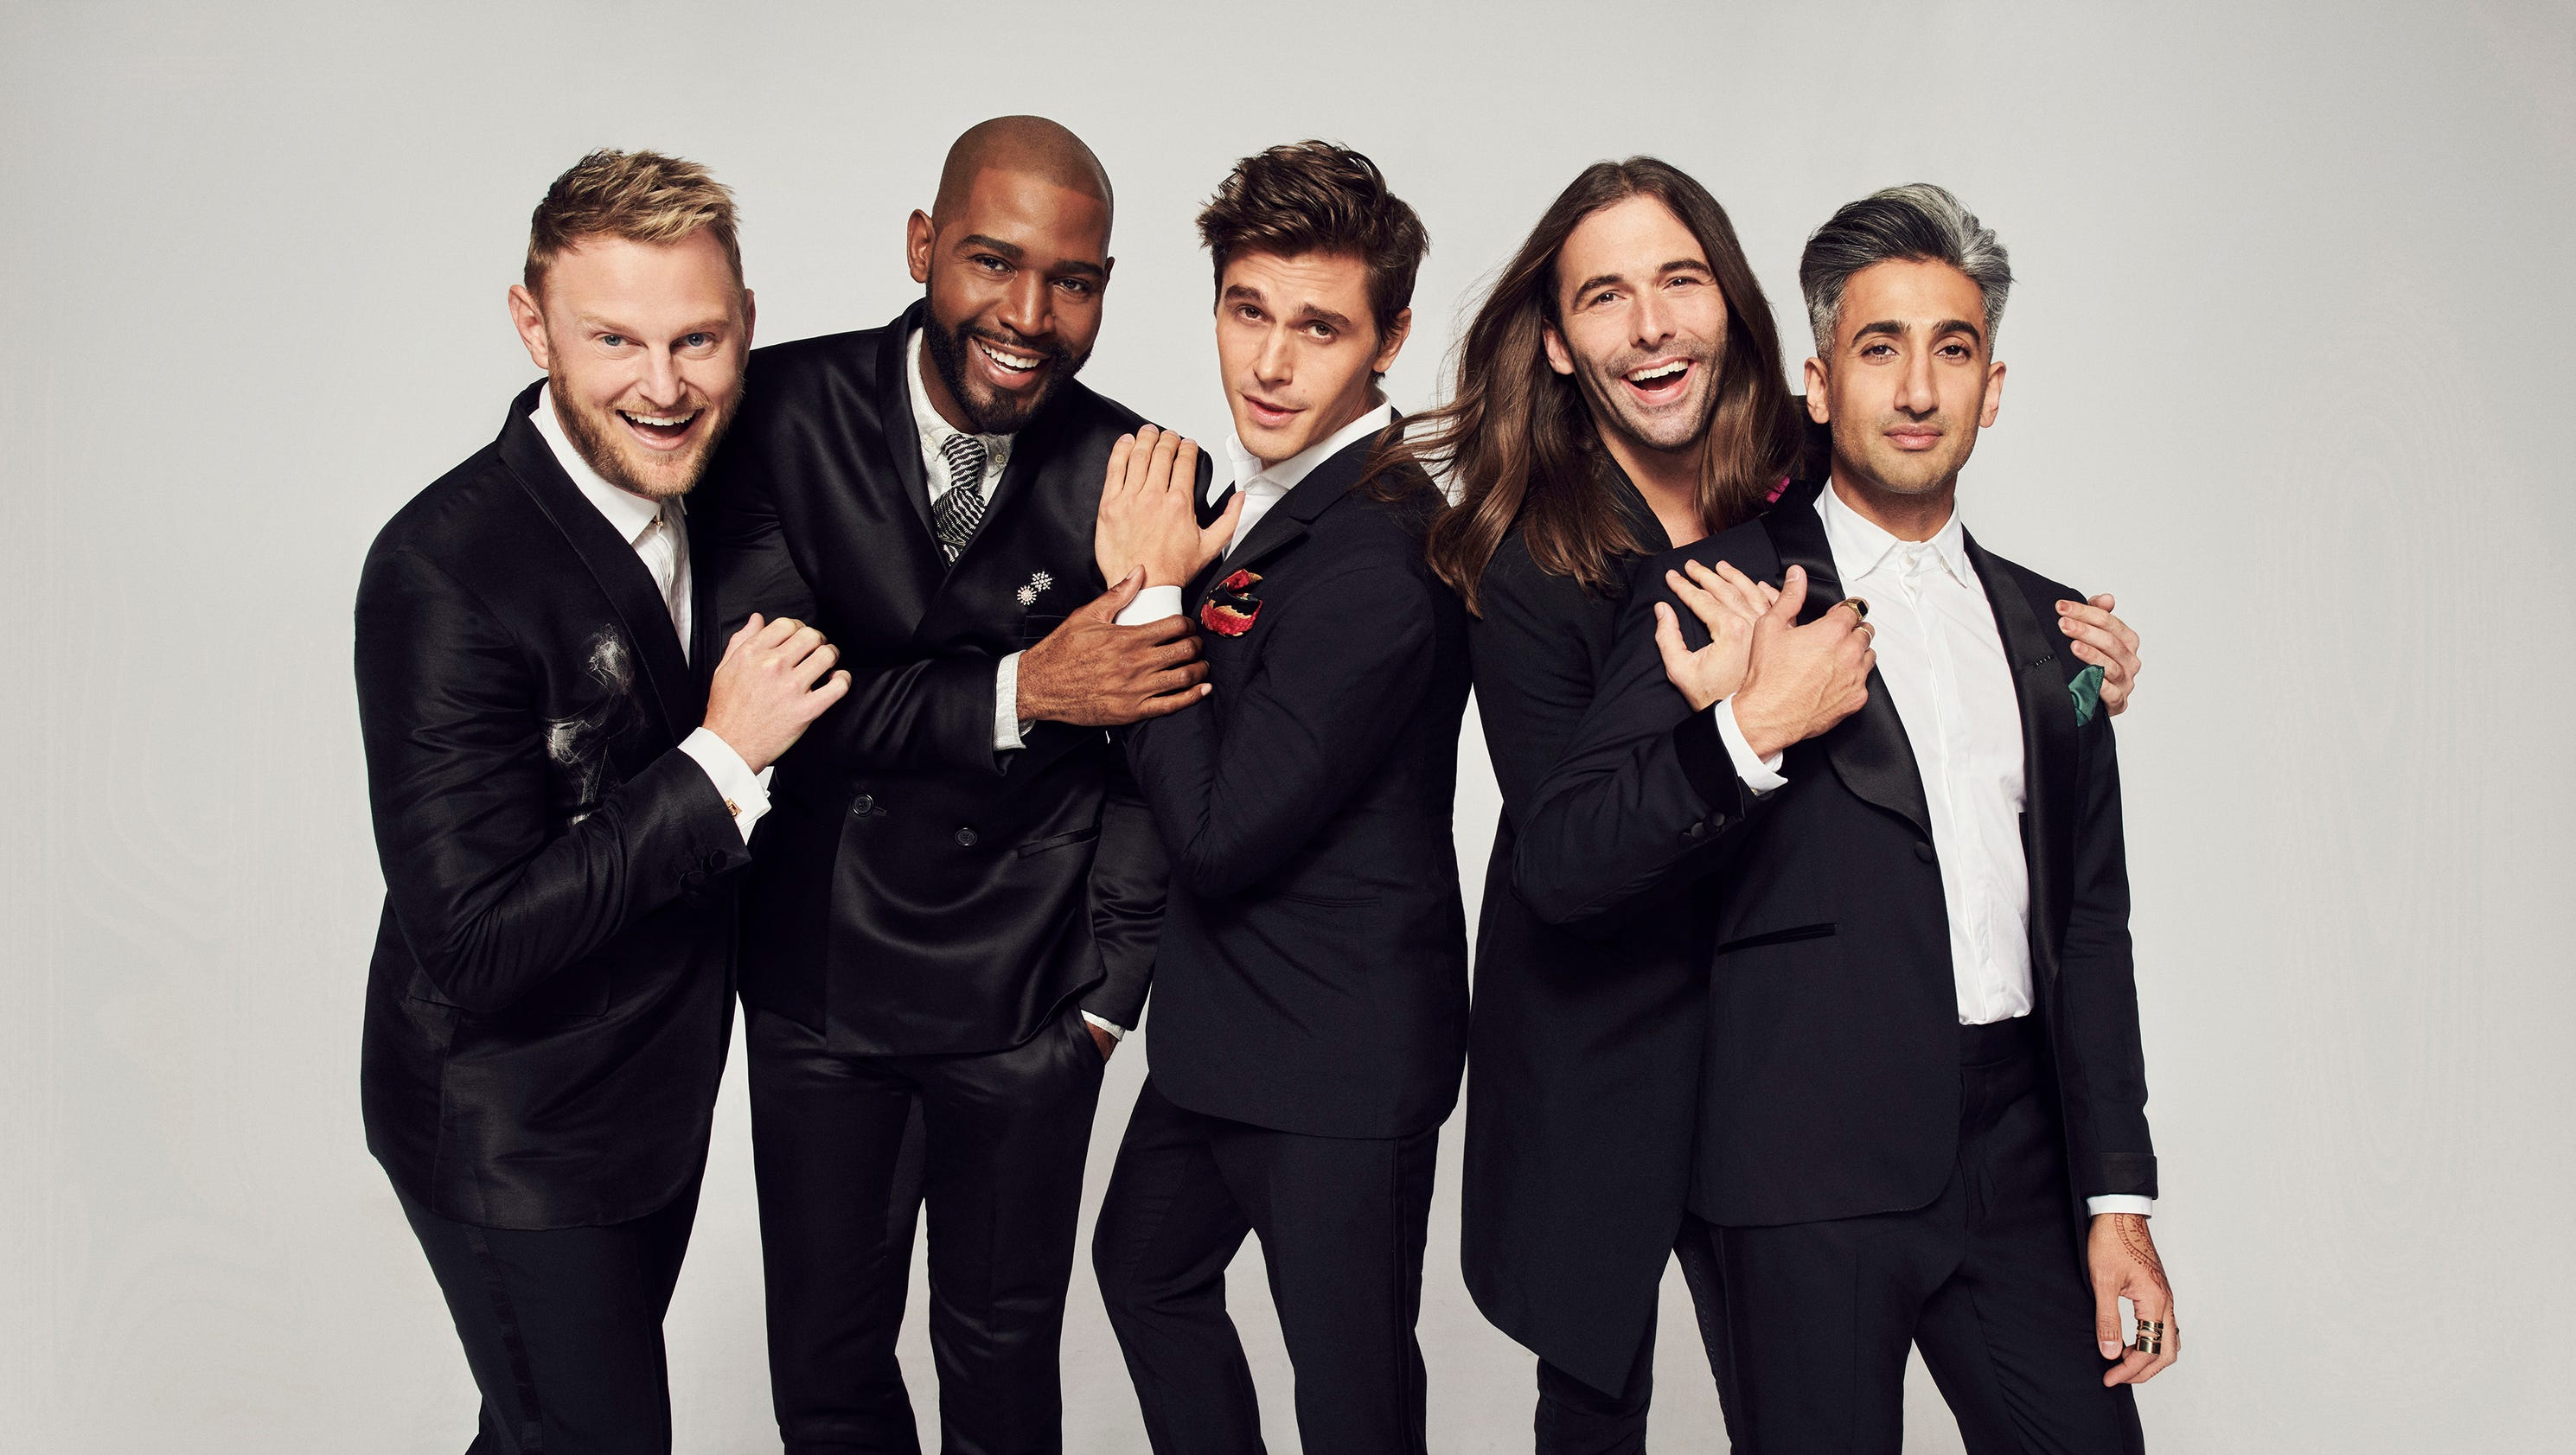 Can Netflix's 'Queer Eye' reboot save America? Probably not, but it's great TV